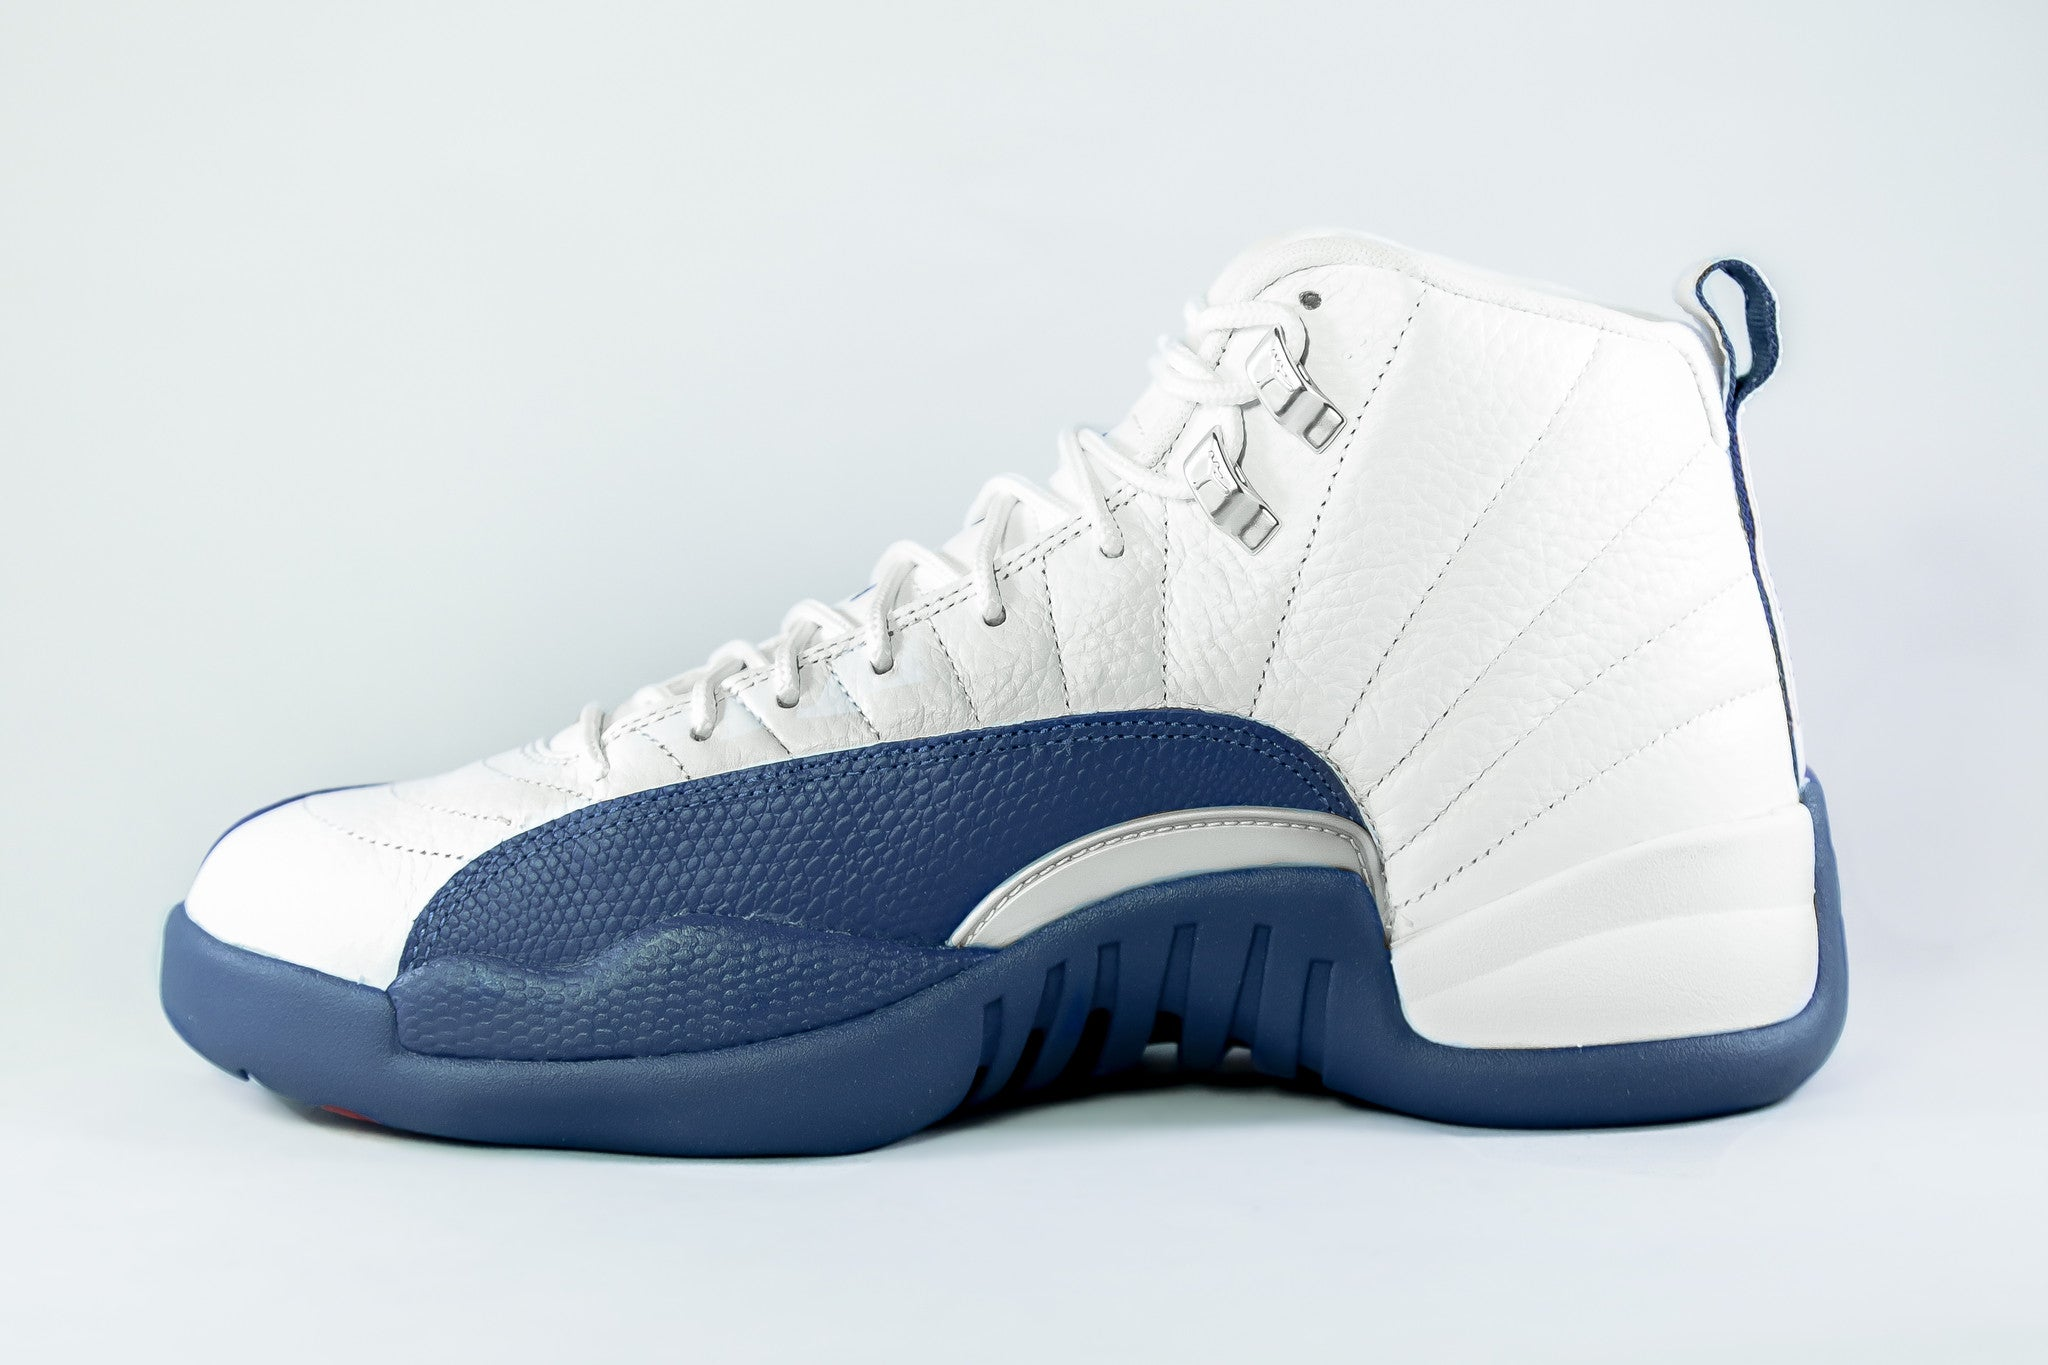 d4321b2f5cceab New Air Jordan 12 Retro